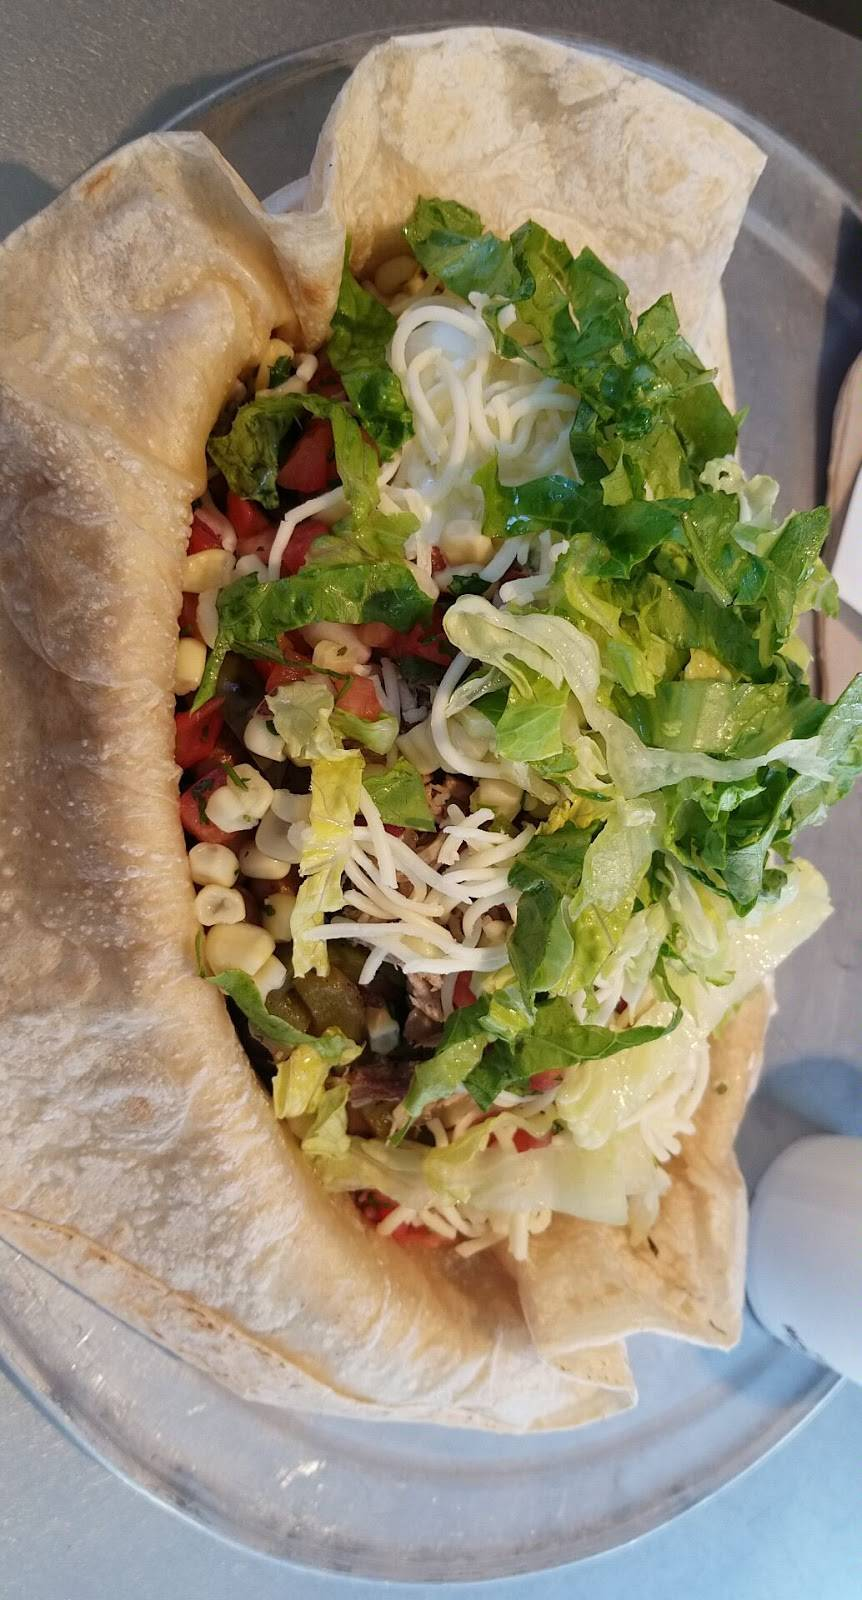 Chipotle Mexican Grill | restaurant | 2860 Gateway St Ste MT200, Springfield, OR 97477, USA | 5417460848 OR +1 541-746-0848